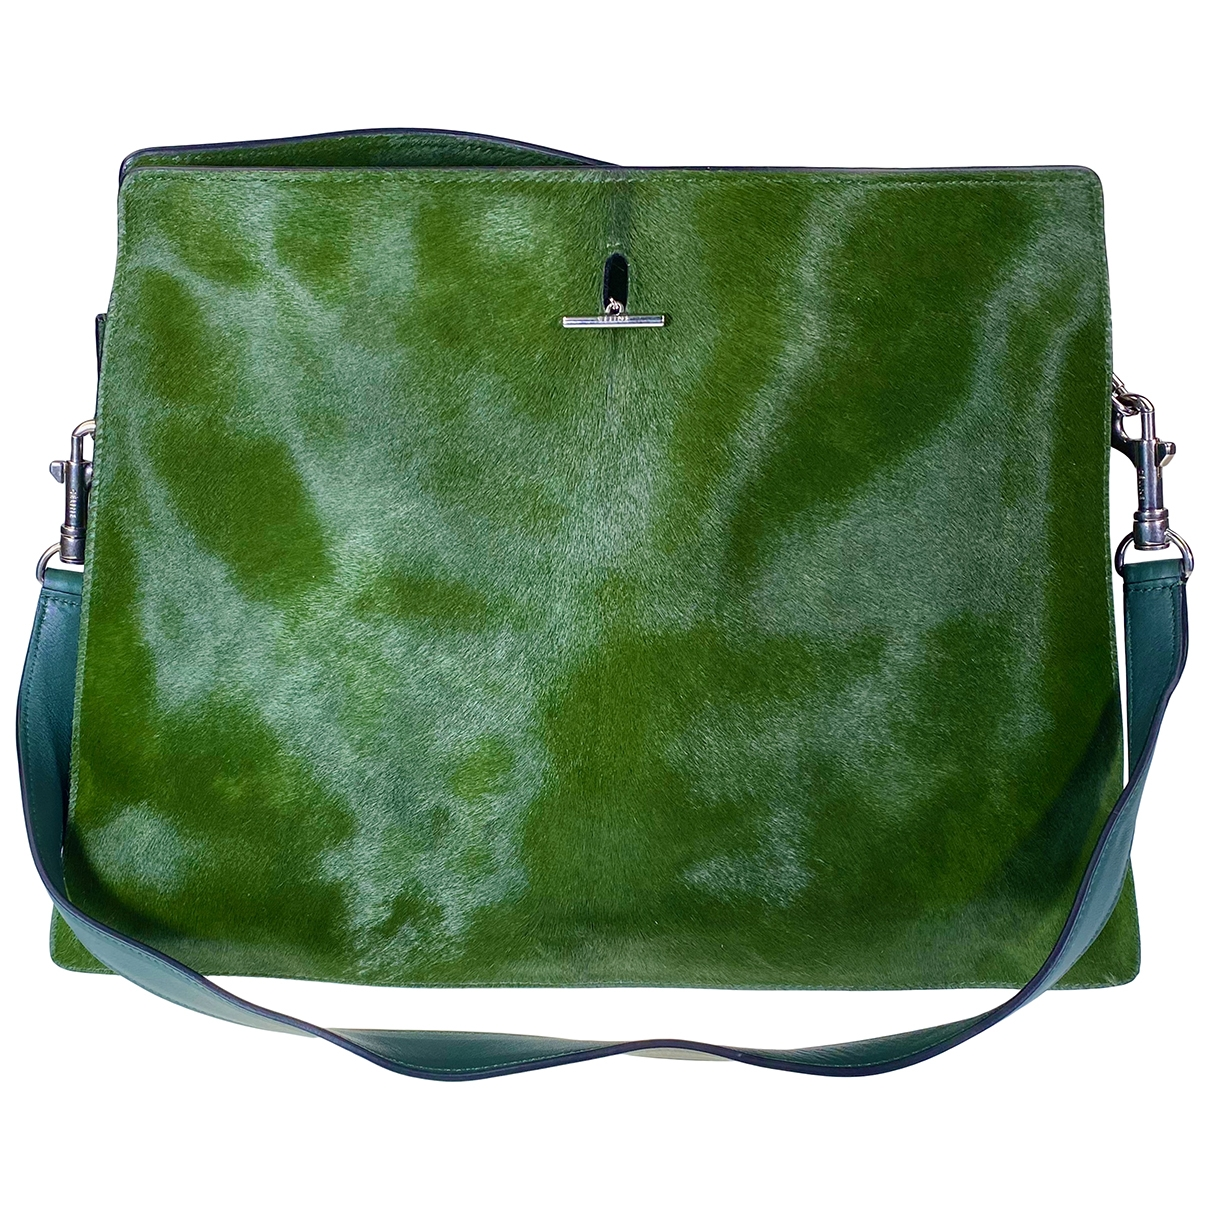 Celine \N Green Pony-style calfskin handbag for Women \N